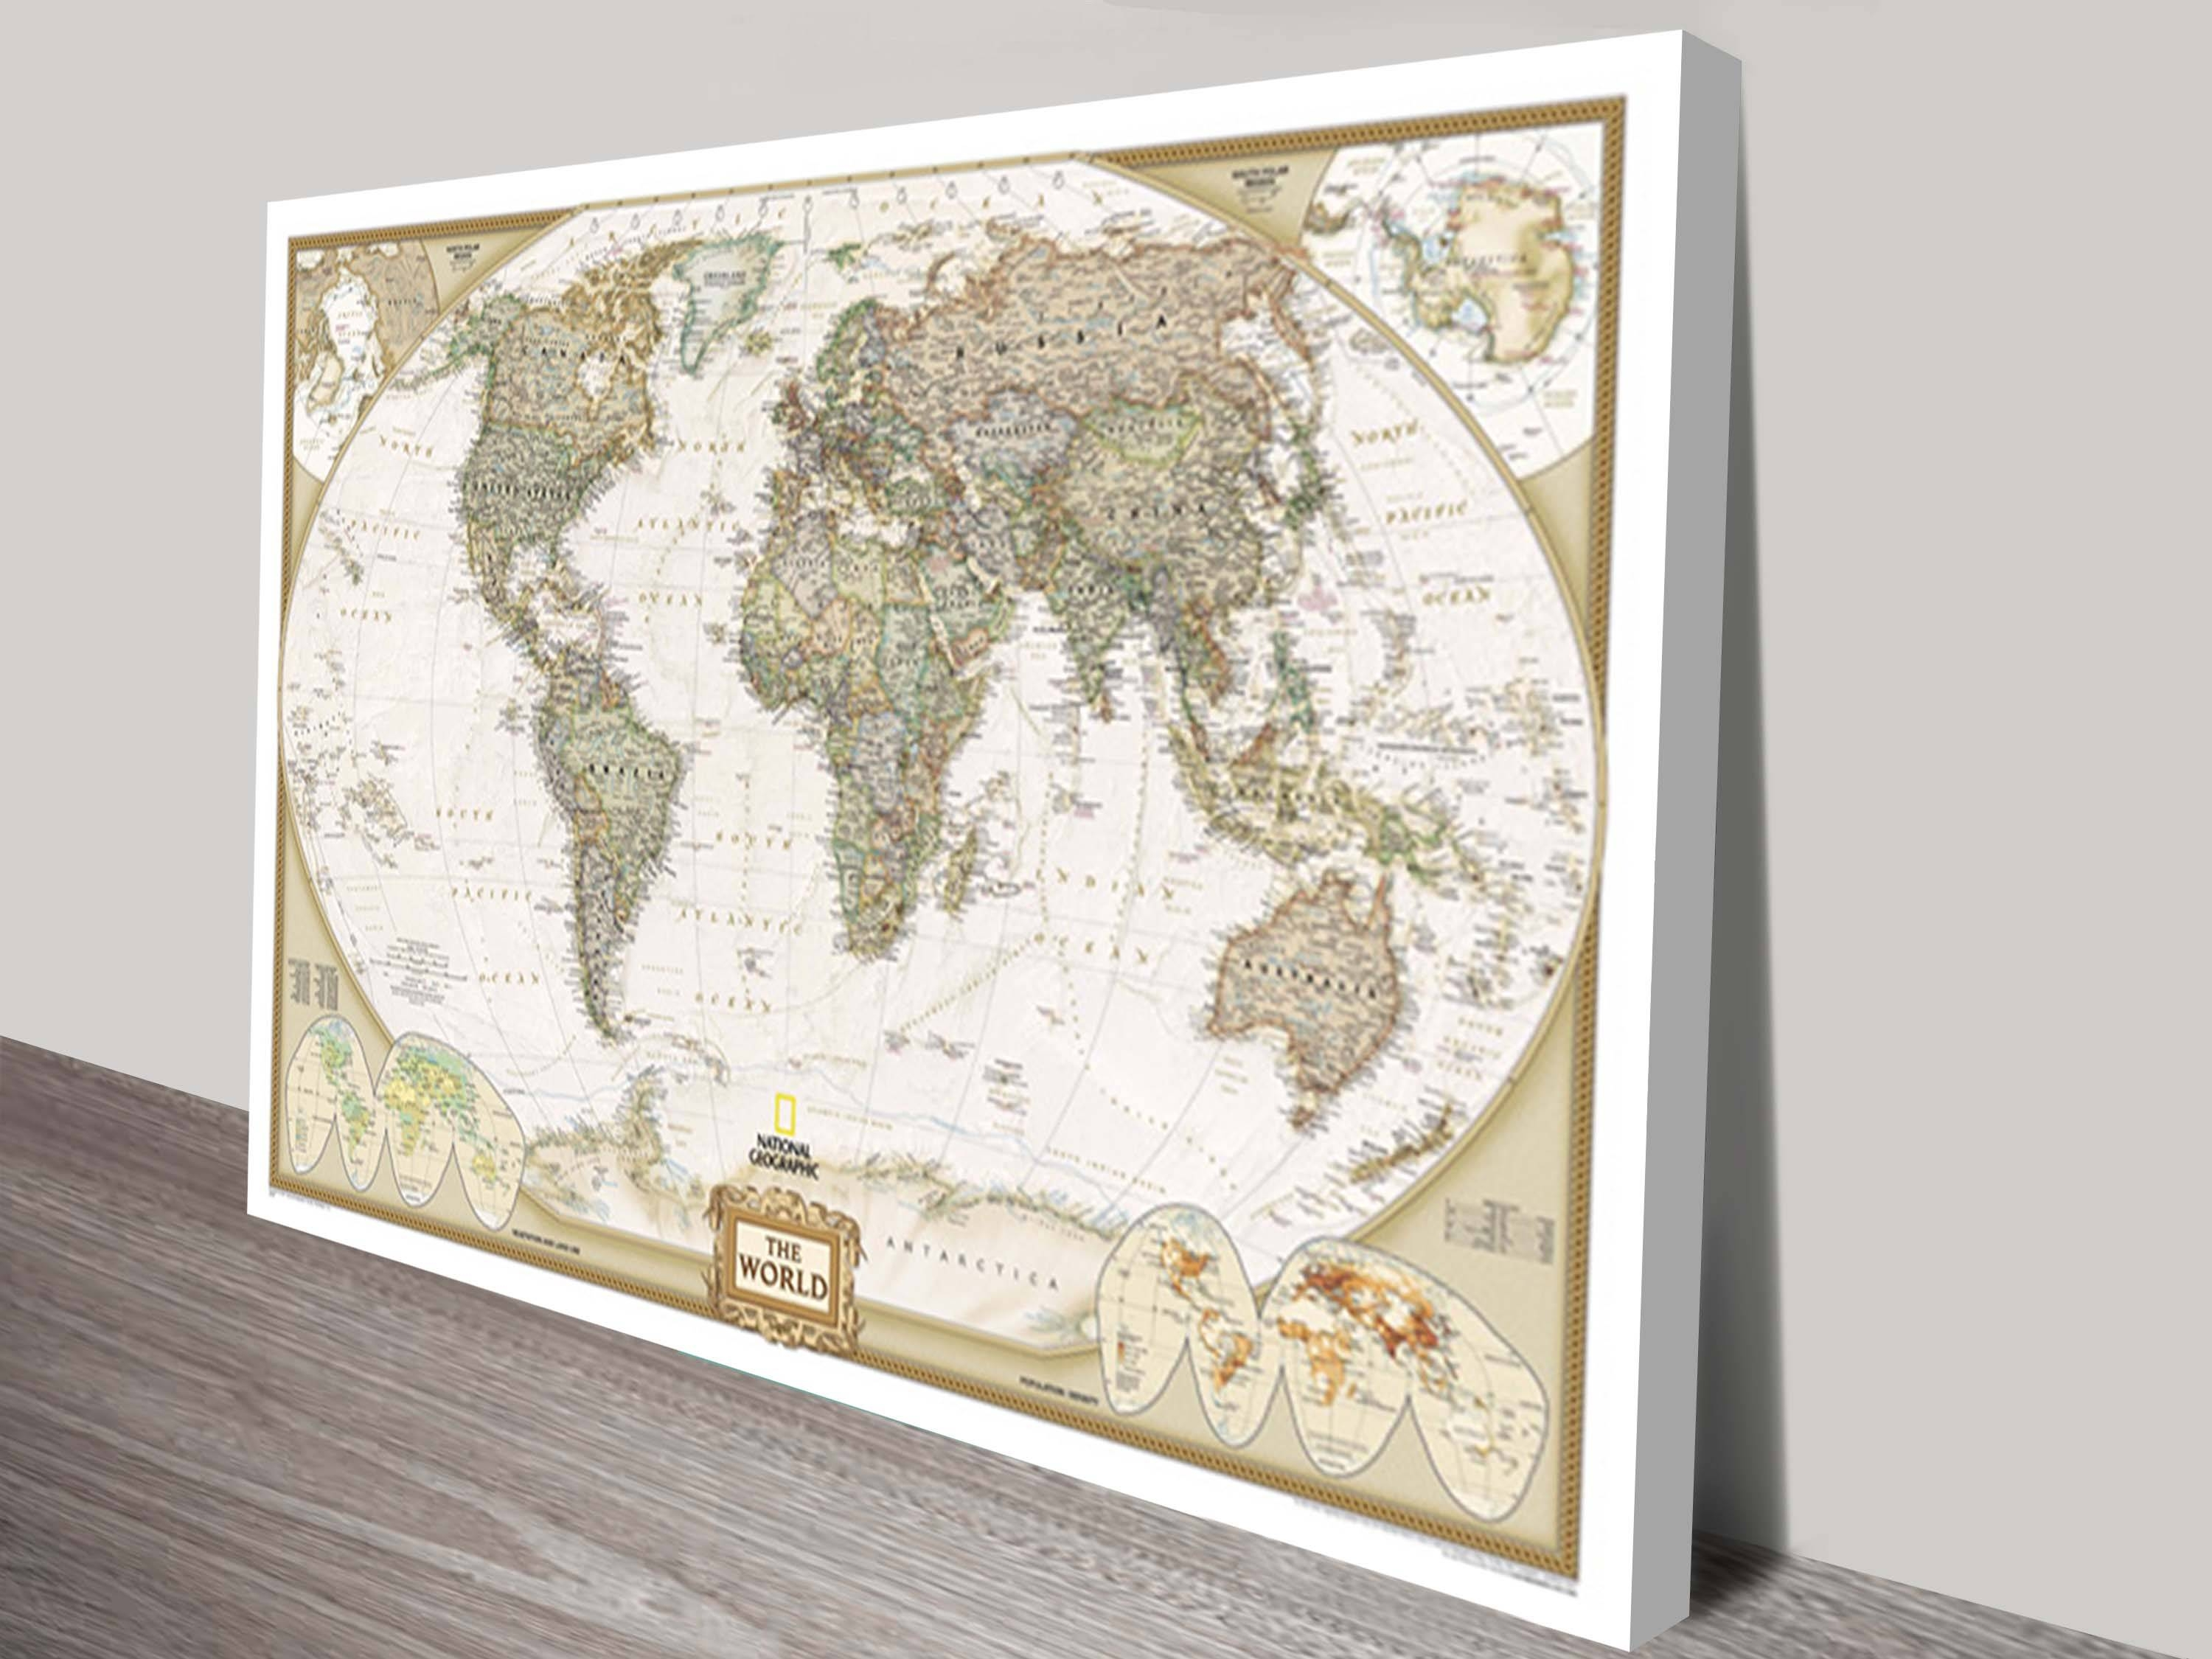 World Map Canvas Wall Art | Framed Maps Sydney With Regard To Best And Newest Framed World Map Wall Art (View 6 of 20)